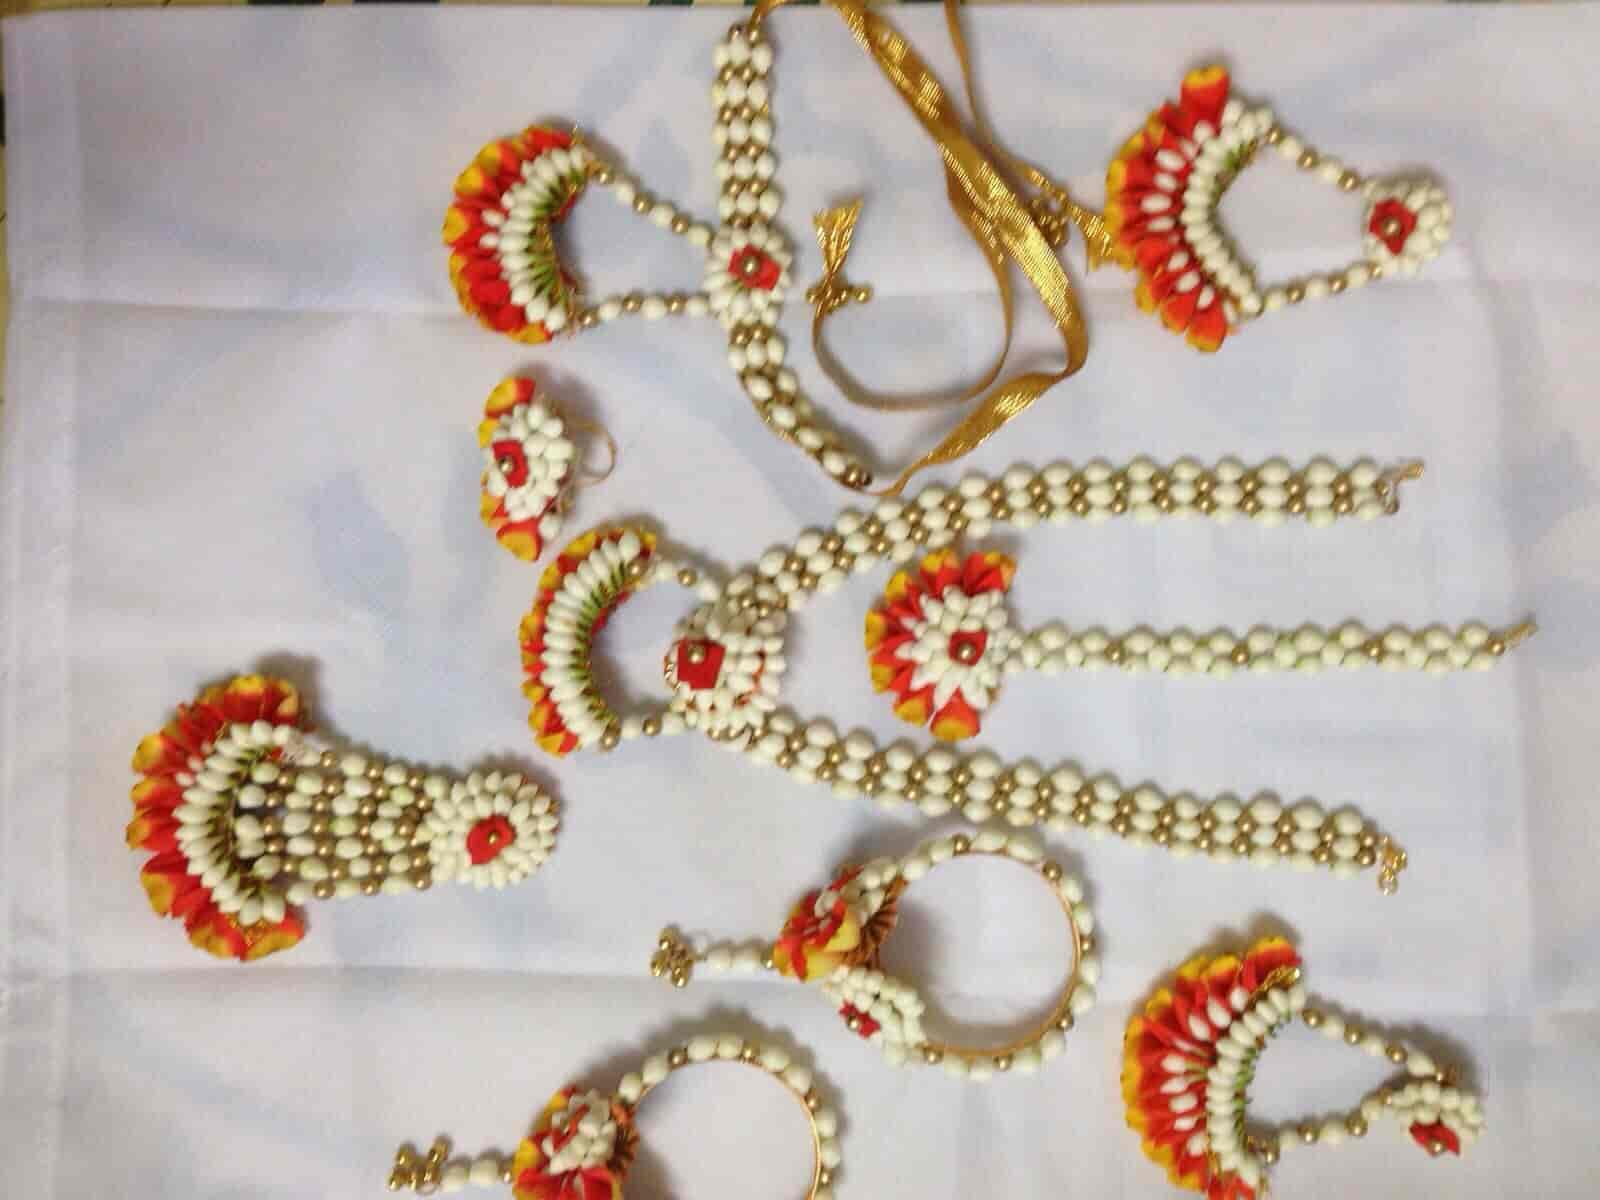 Anoo Flower Jewellery Photos Kharghar Sector 10 Navi Mumbai